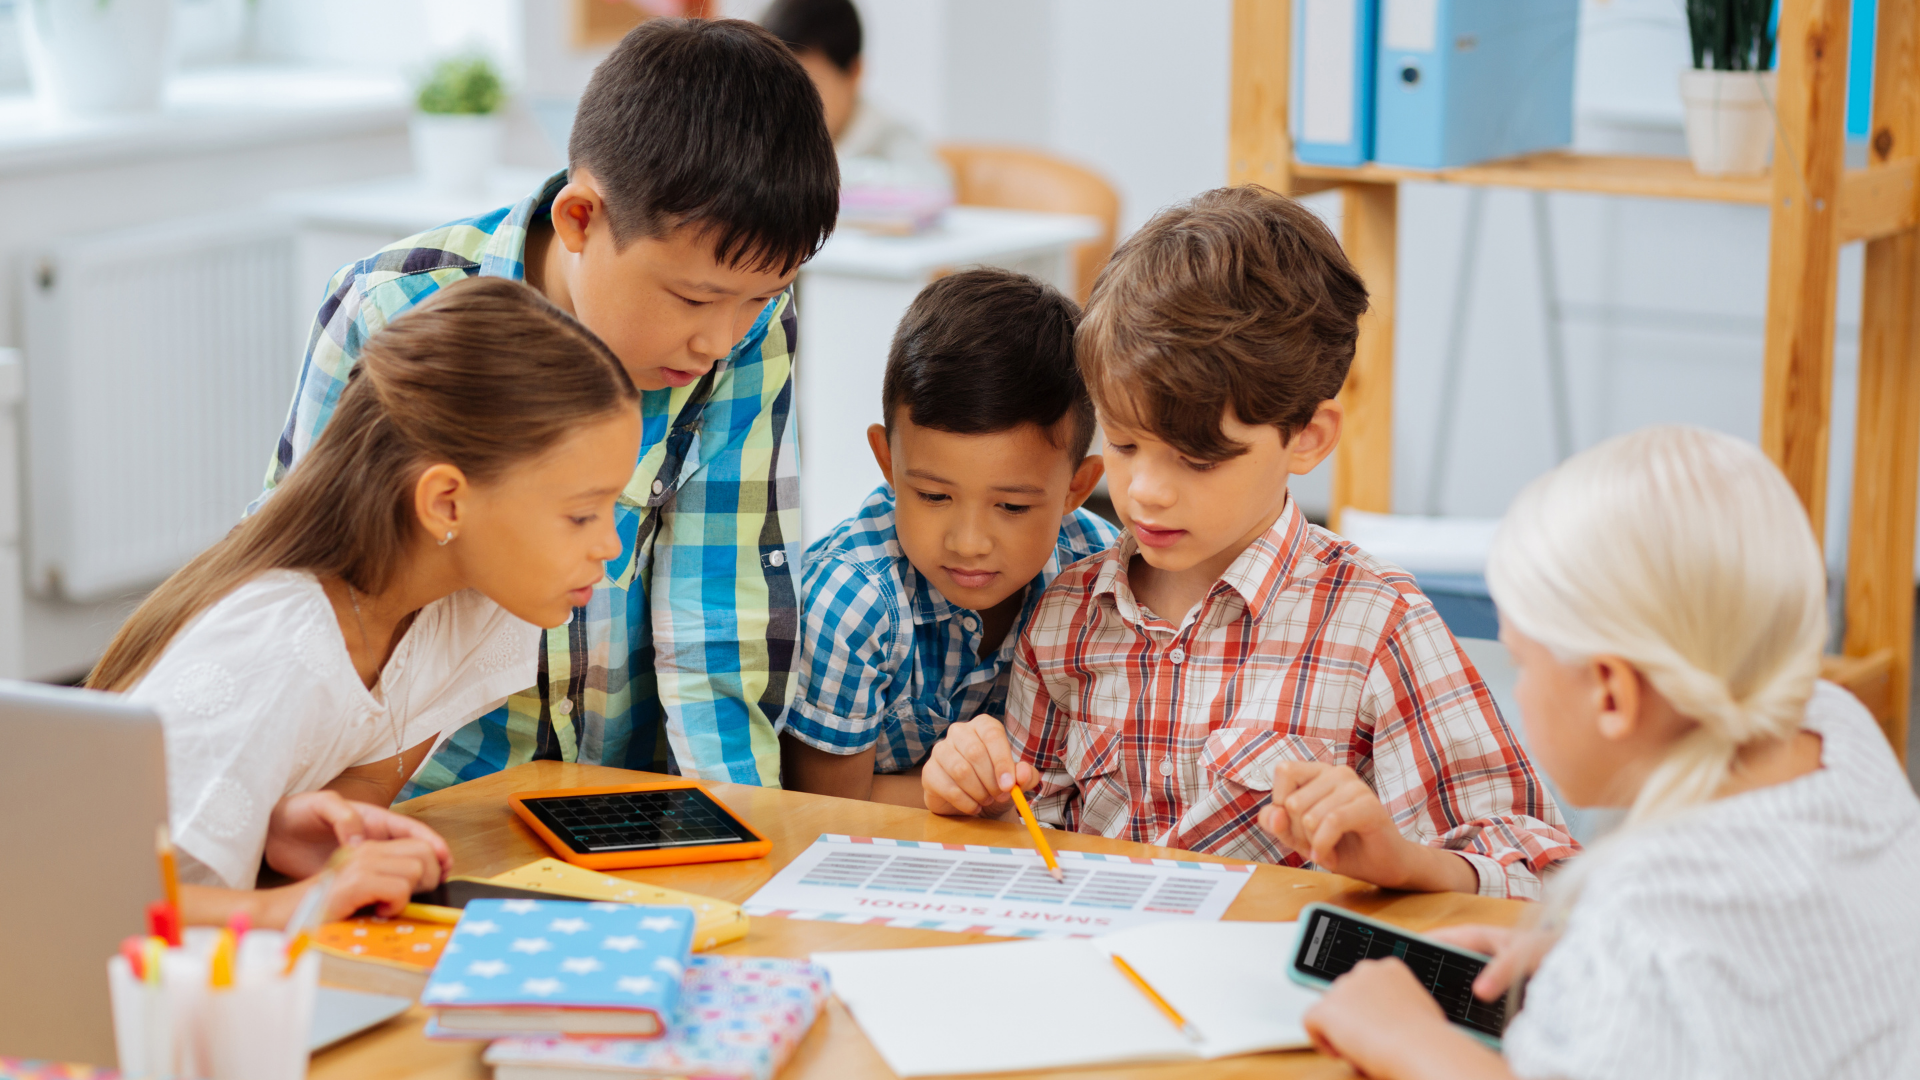 Image shows students working together around a classroom table.